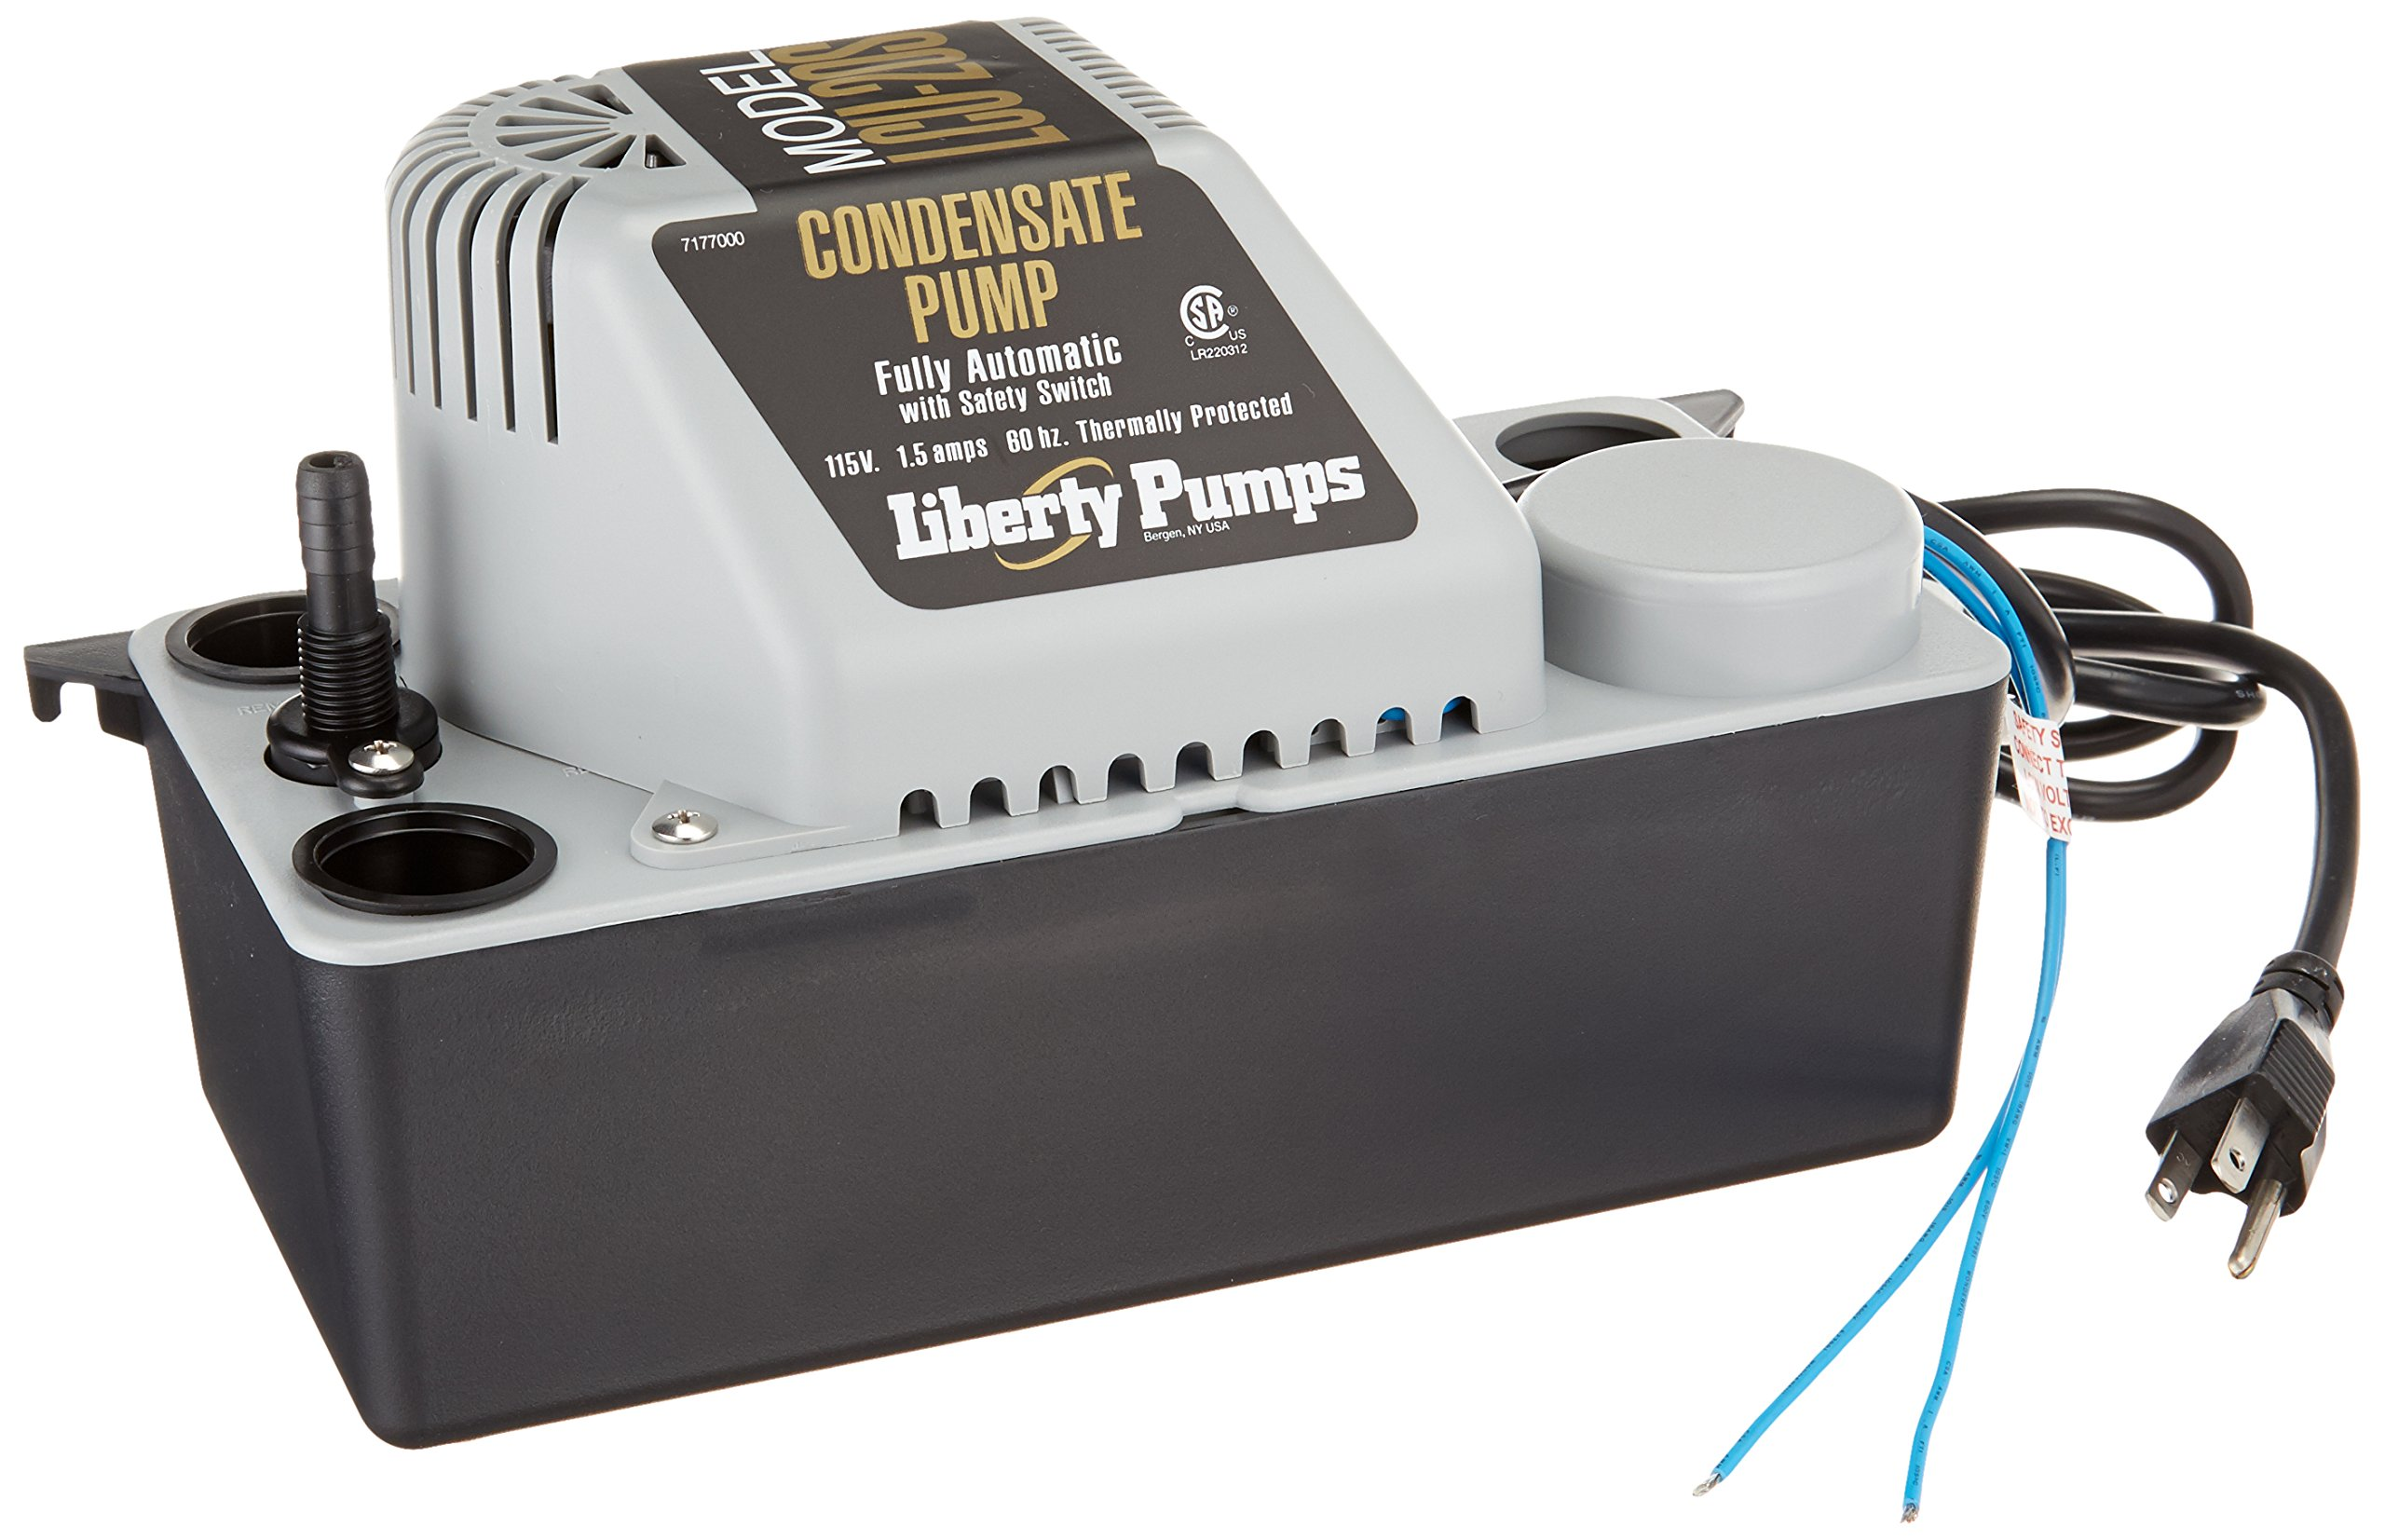 Liberty Pumps LCU 20S Automatic Condensate